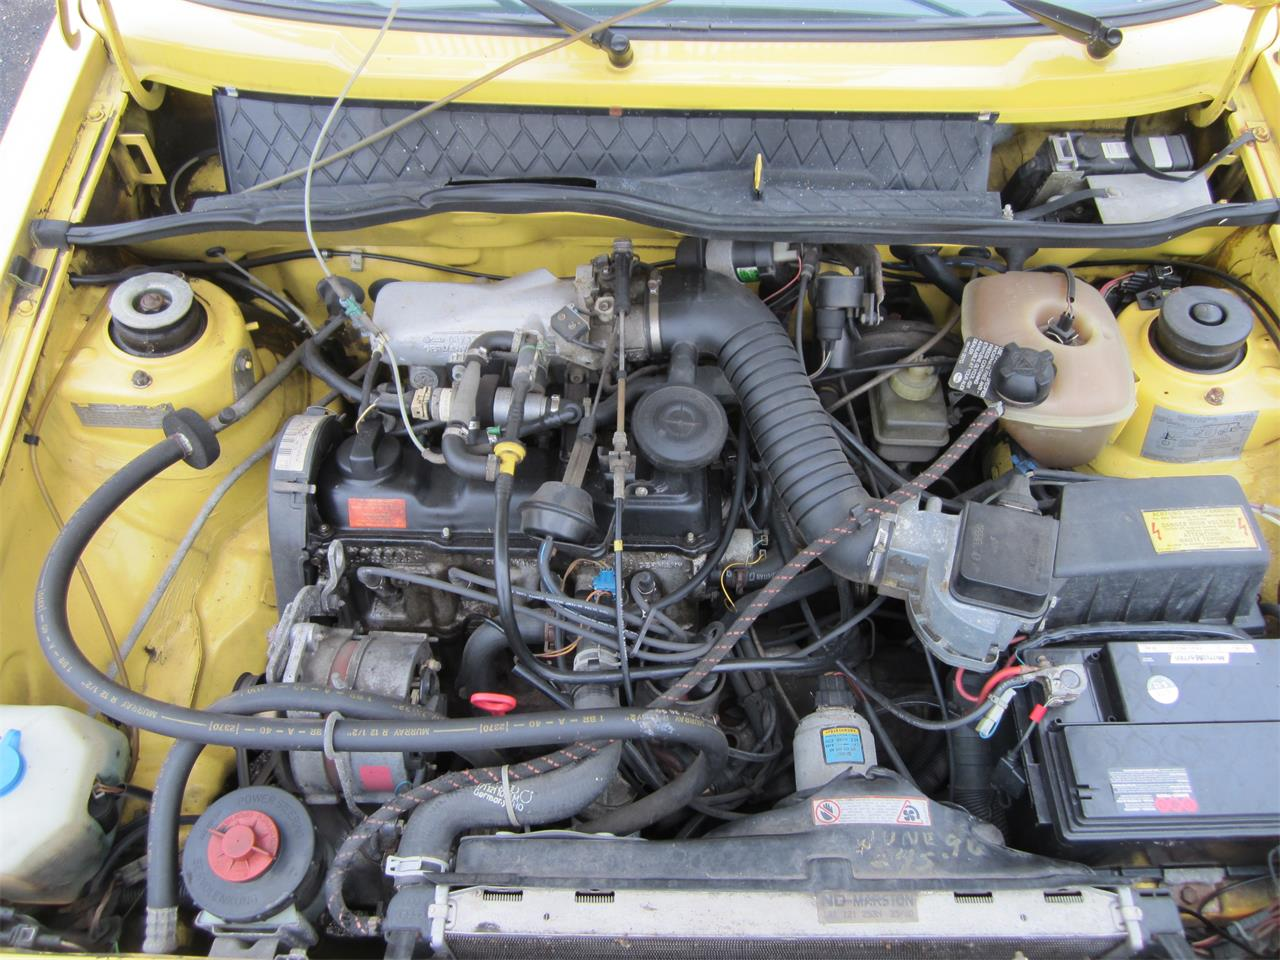 Large Picture of 1991 Volkswagen Cabriolet Offered by a Private Seller - JGCG